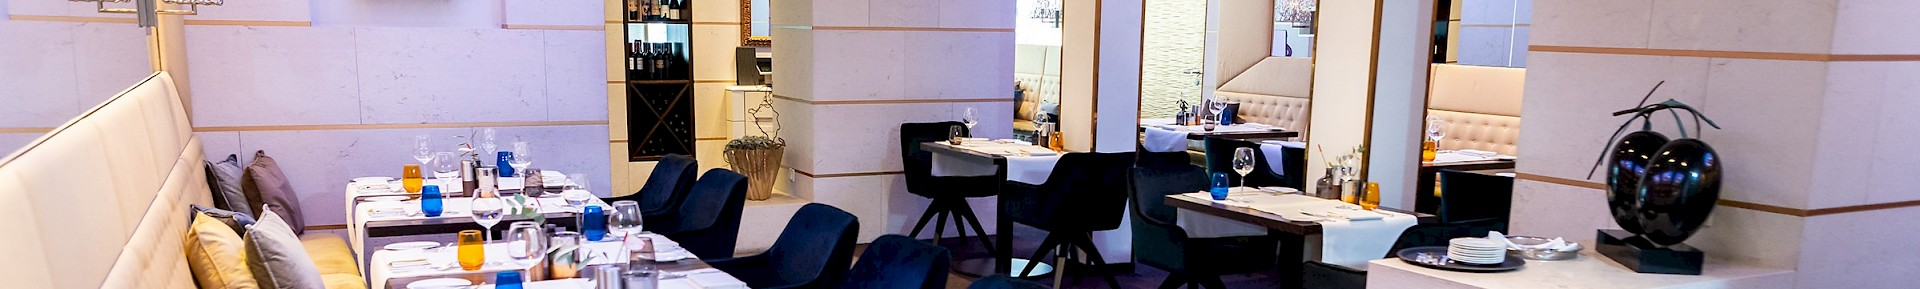 Enjoy breakfast and / or dinner in the stylish hotel restaurant